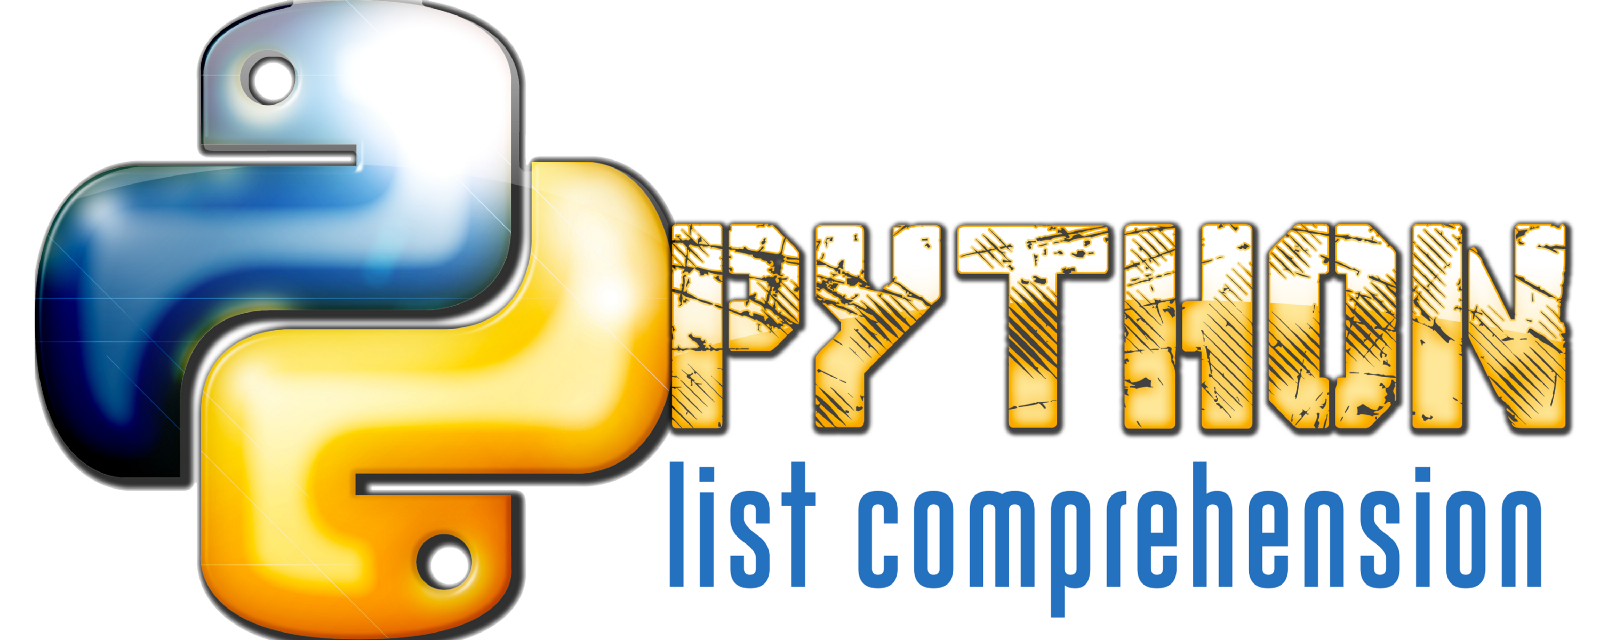 /list-comprehension-in-python-c762ba1f523f feature image